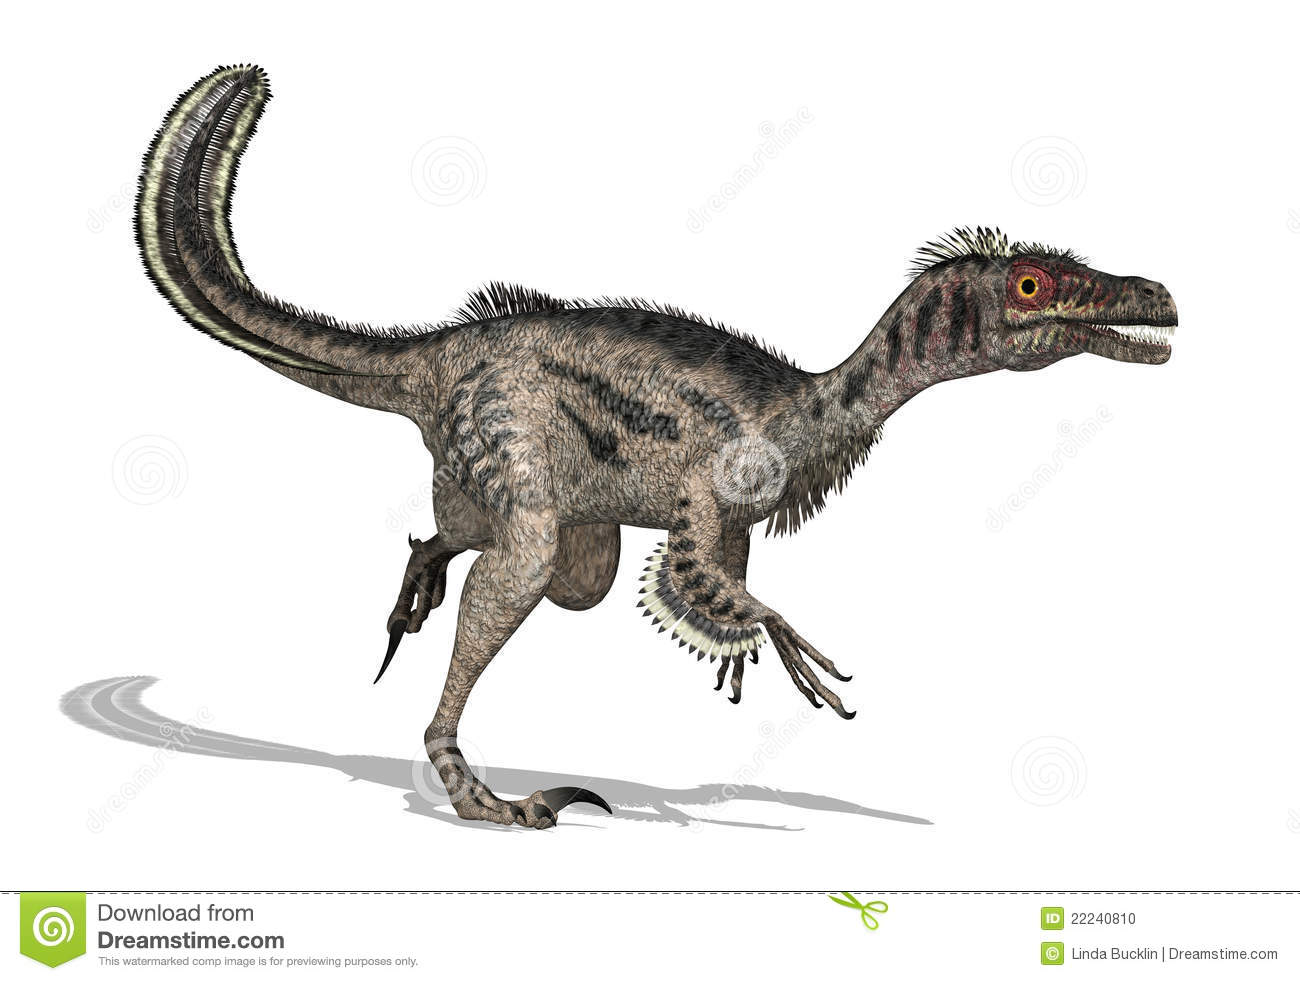 Velociraptor clipart #15, Download drawings